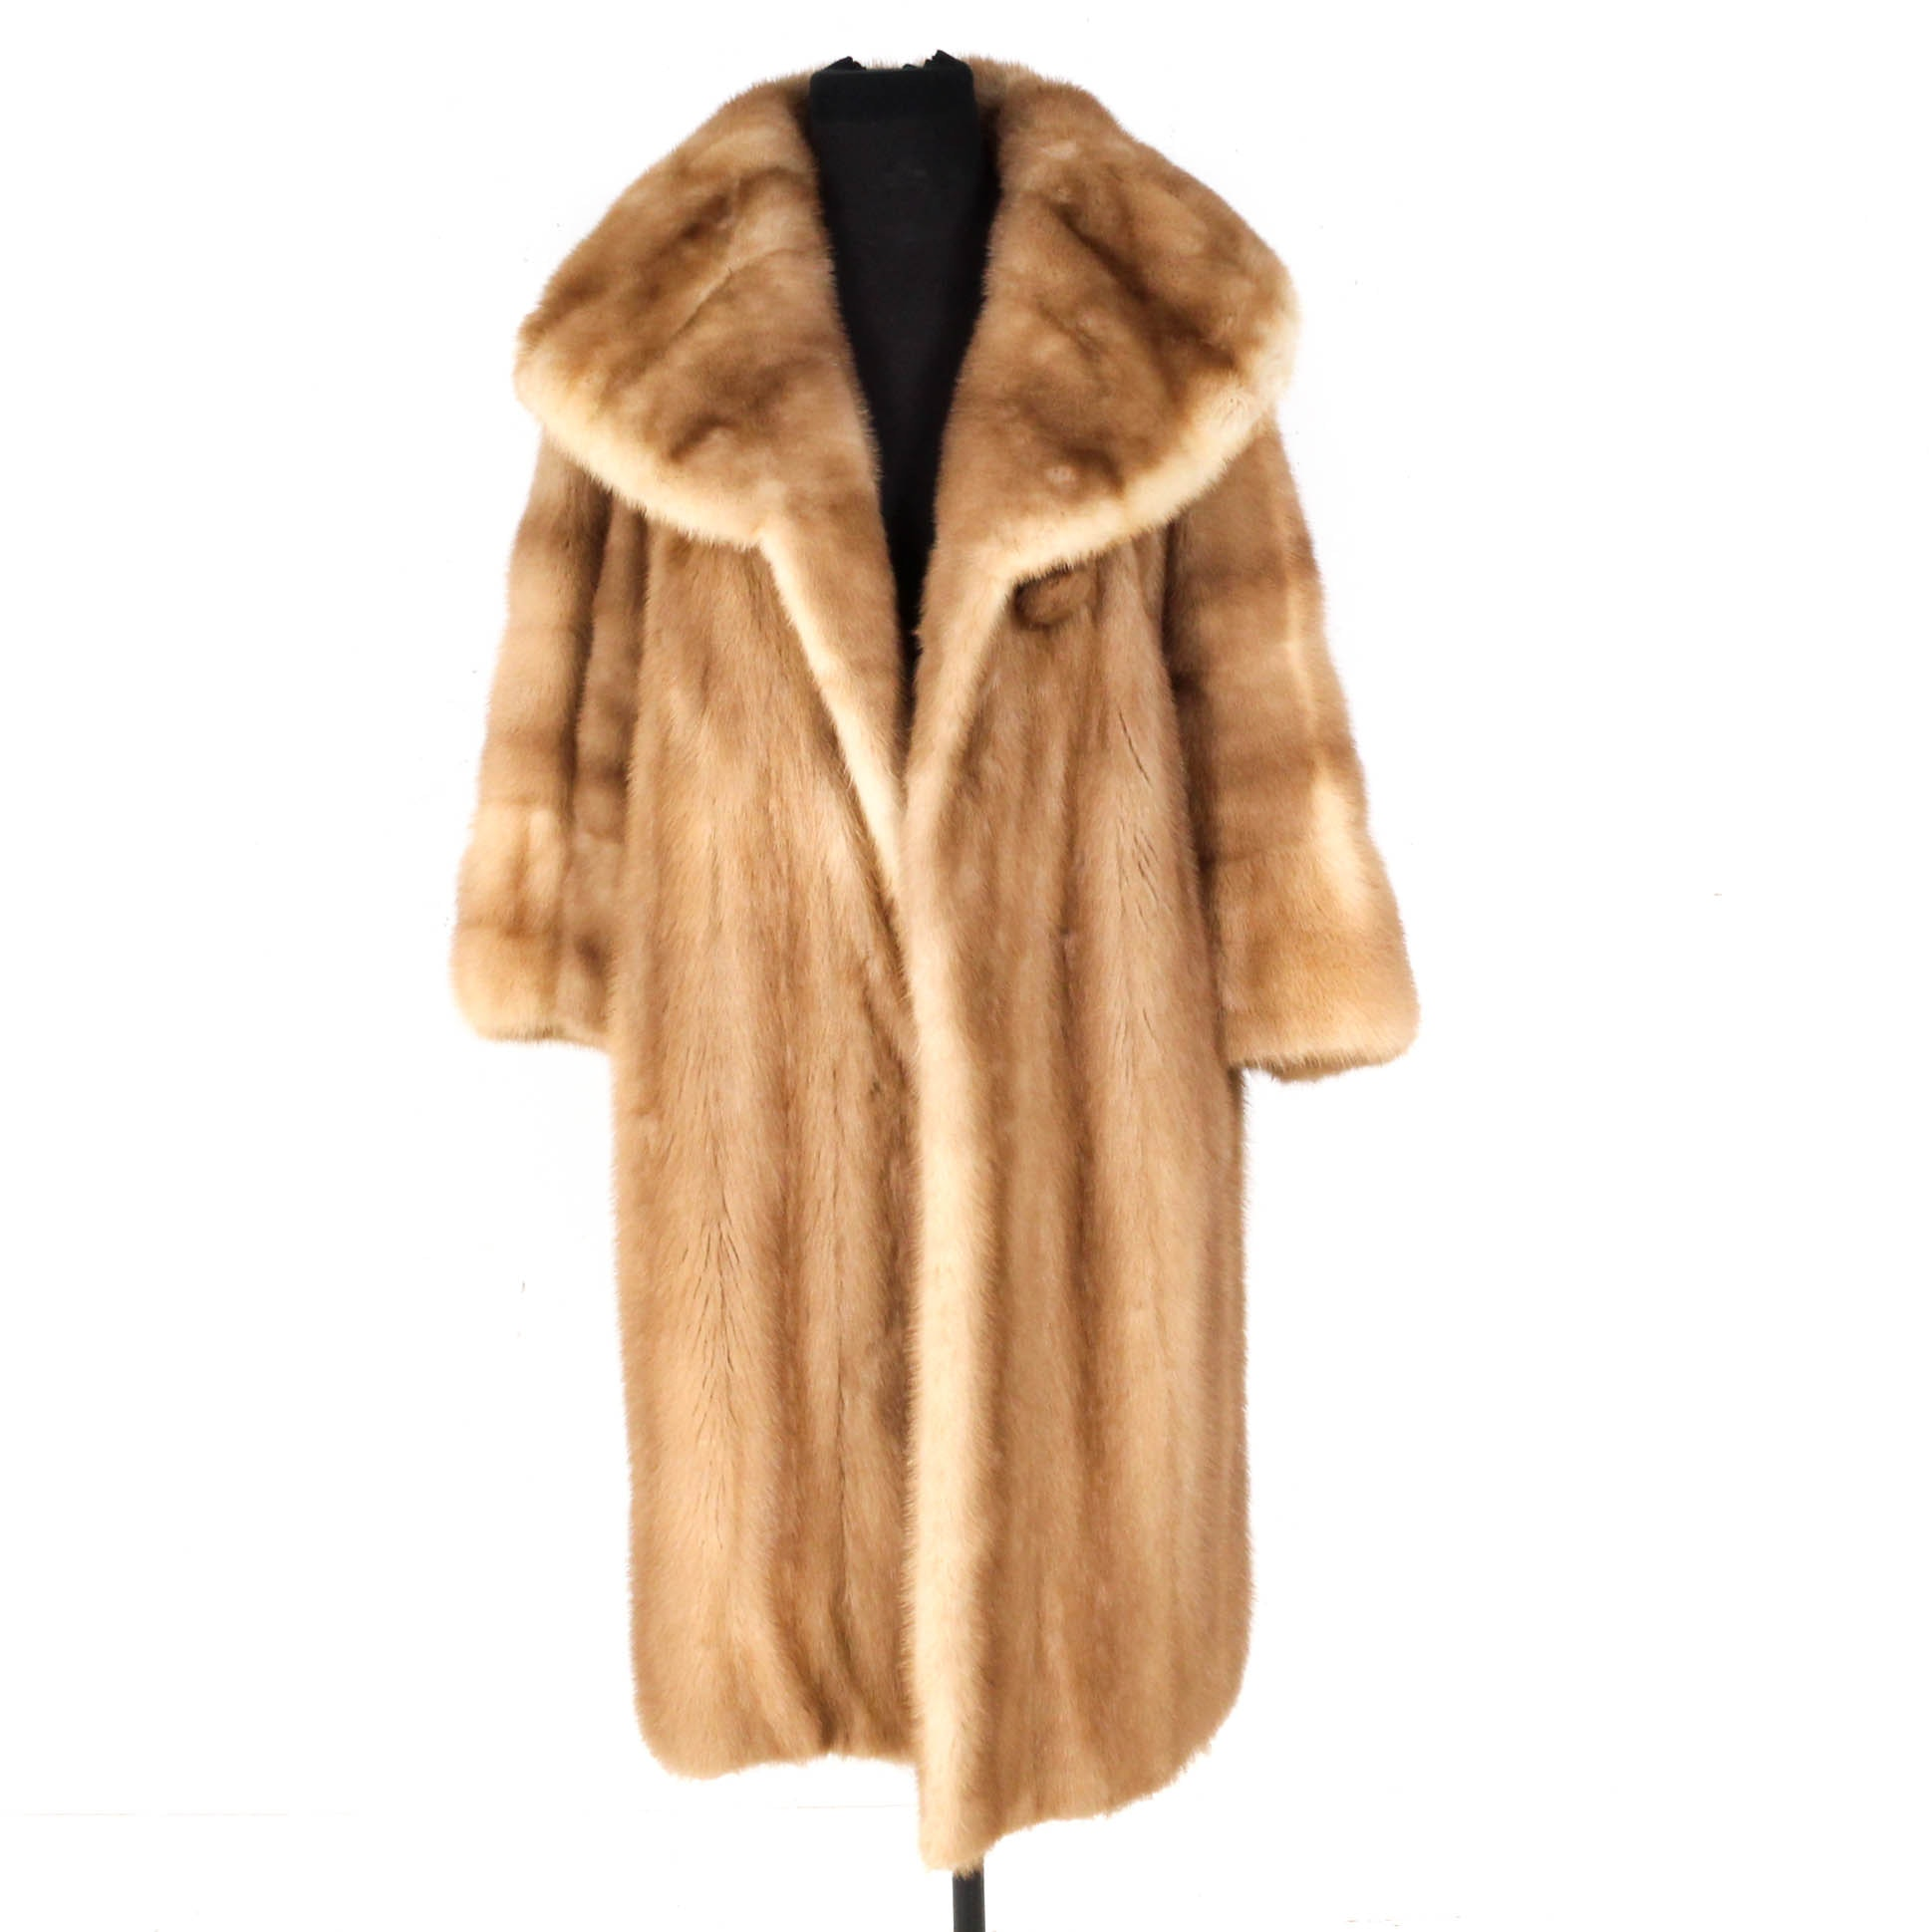 Oak Park Furriers Pastel Mink Fur Coat